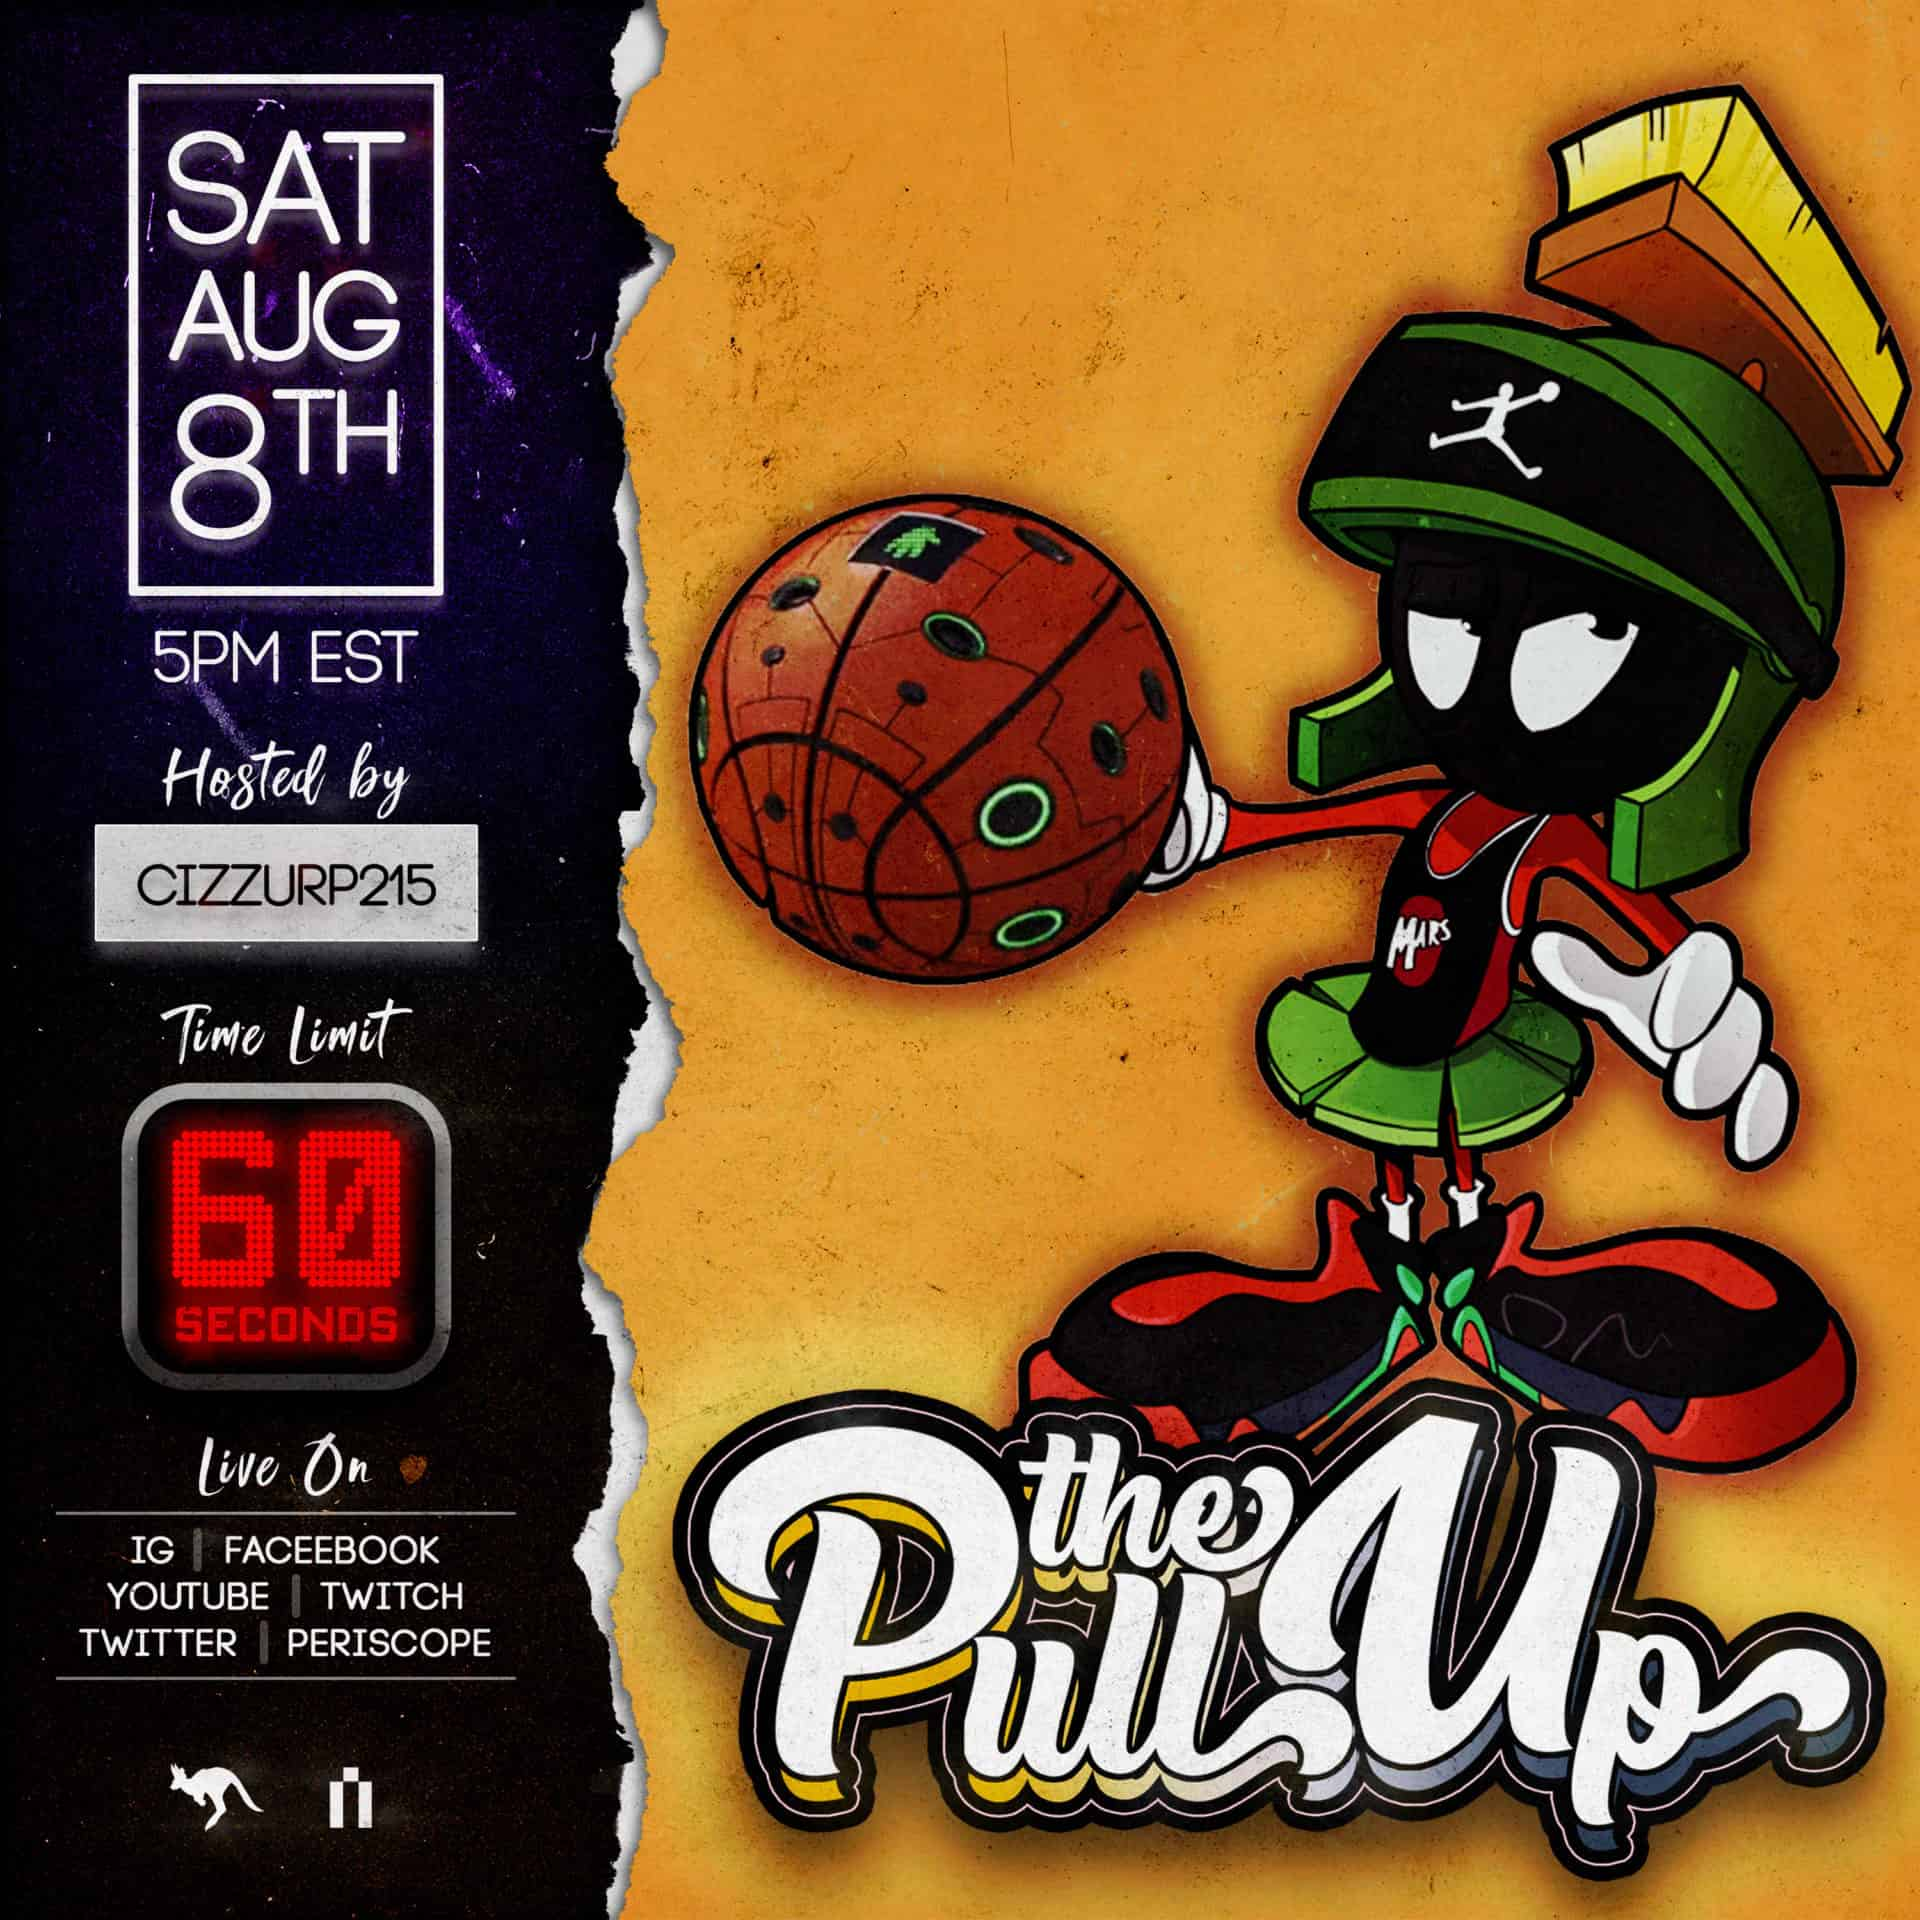 The Pull Up 19 Flyer